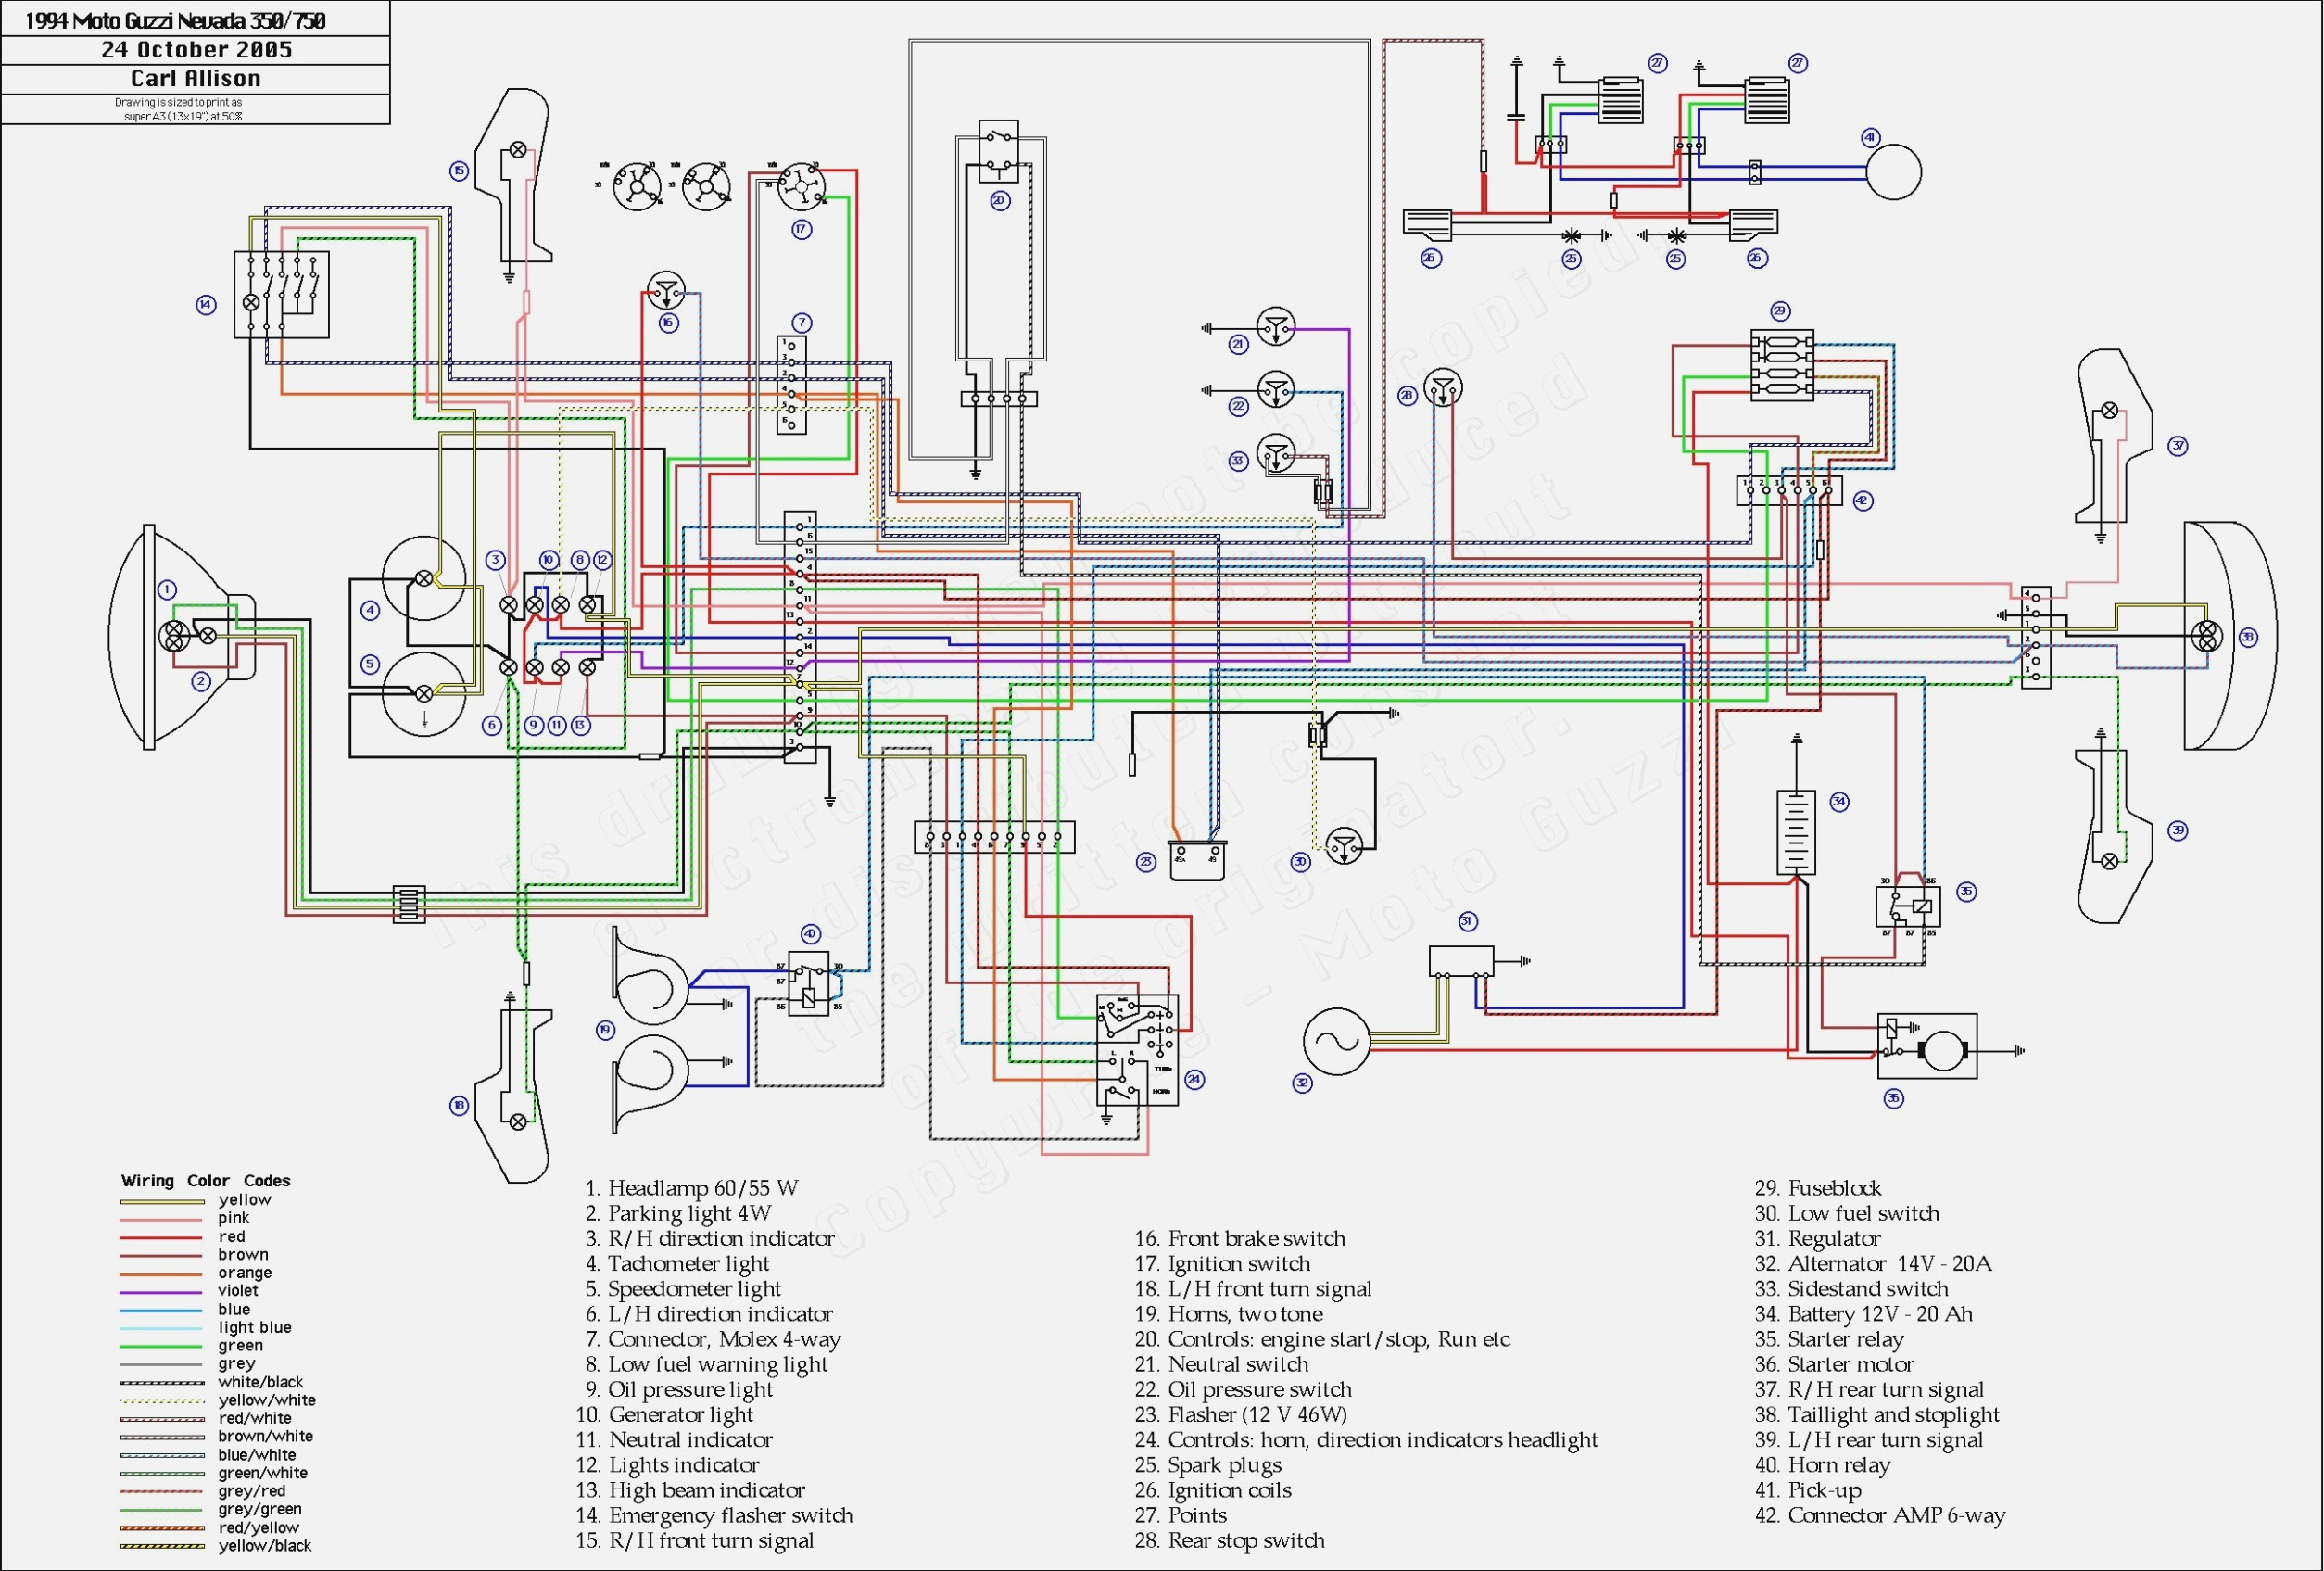 Simple Turn Signal Wiring Diagram Dyna Turn Signal Wiring Diagram Wiring Diagram toolbox Of Simple Turn Signal Wiring Diagram Wiring Diagram Ididit Steering Column Simple Wiring Diagram Datasource